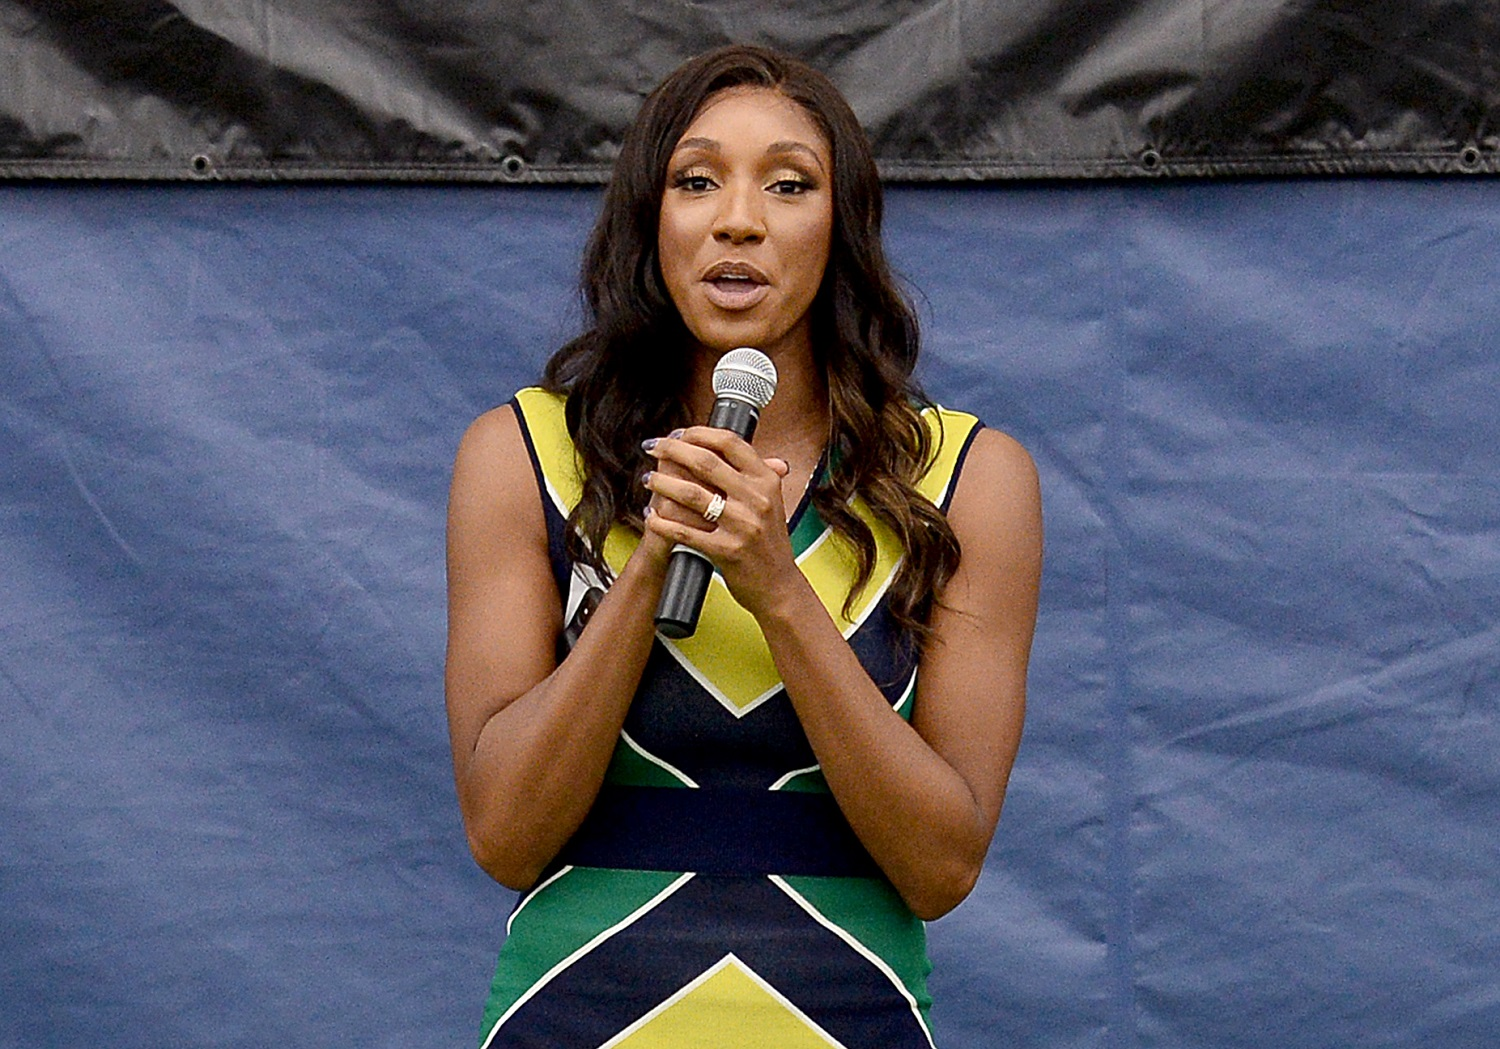 ESPN's Maria Taylor Traces Her Achievements to a Famous Couple's Inspiration